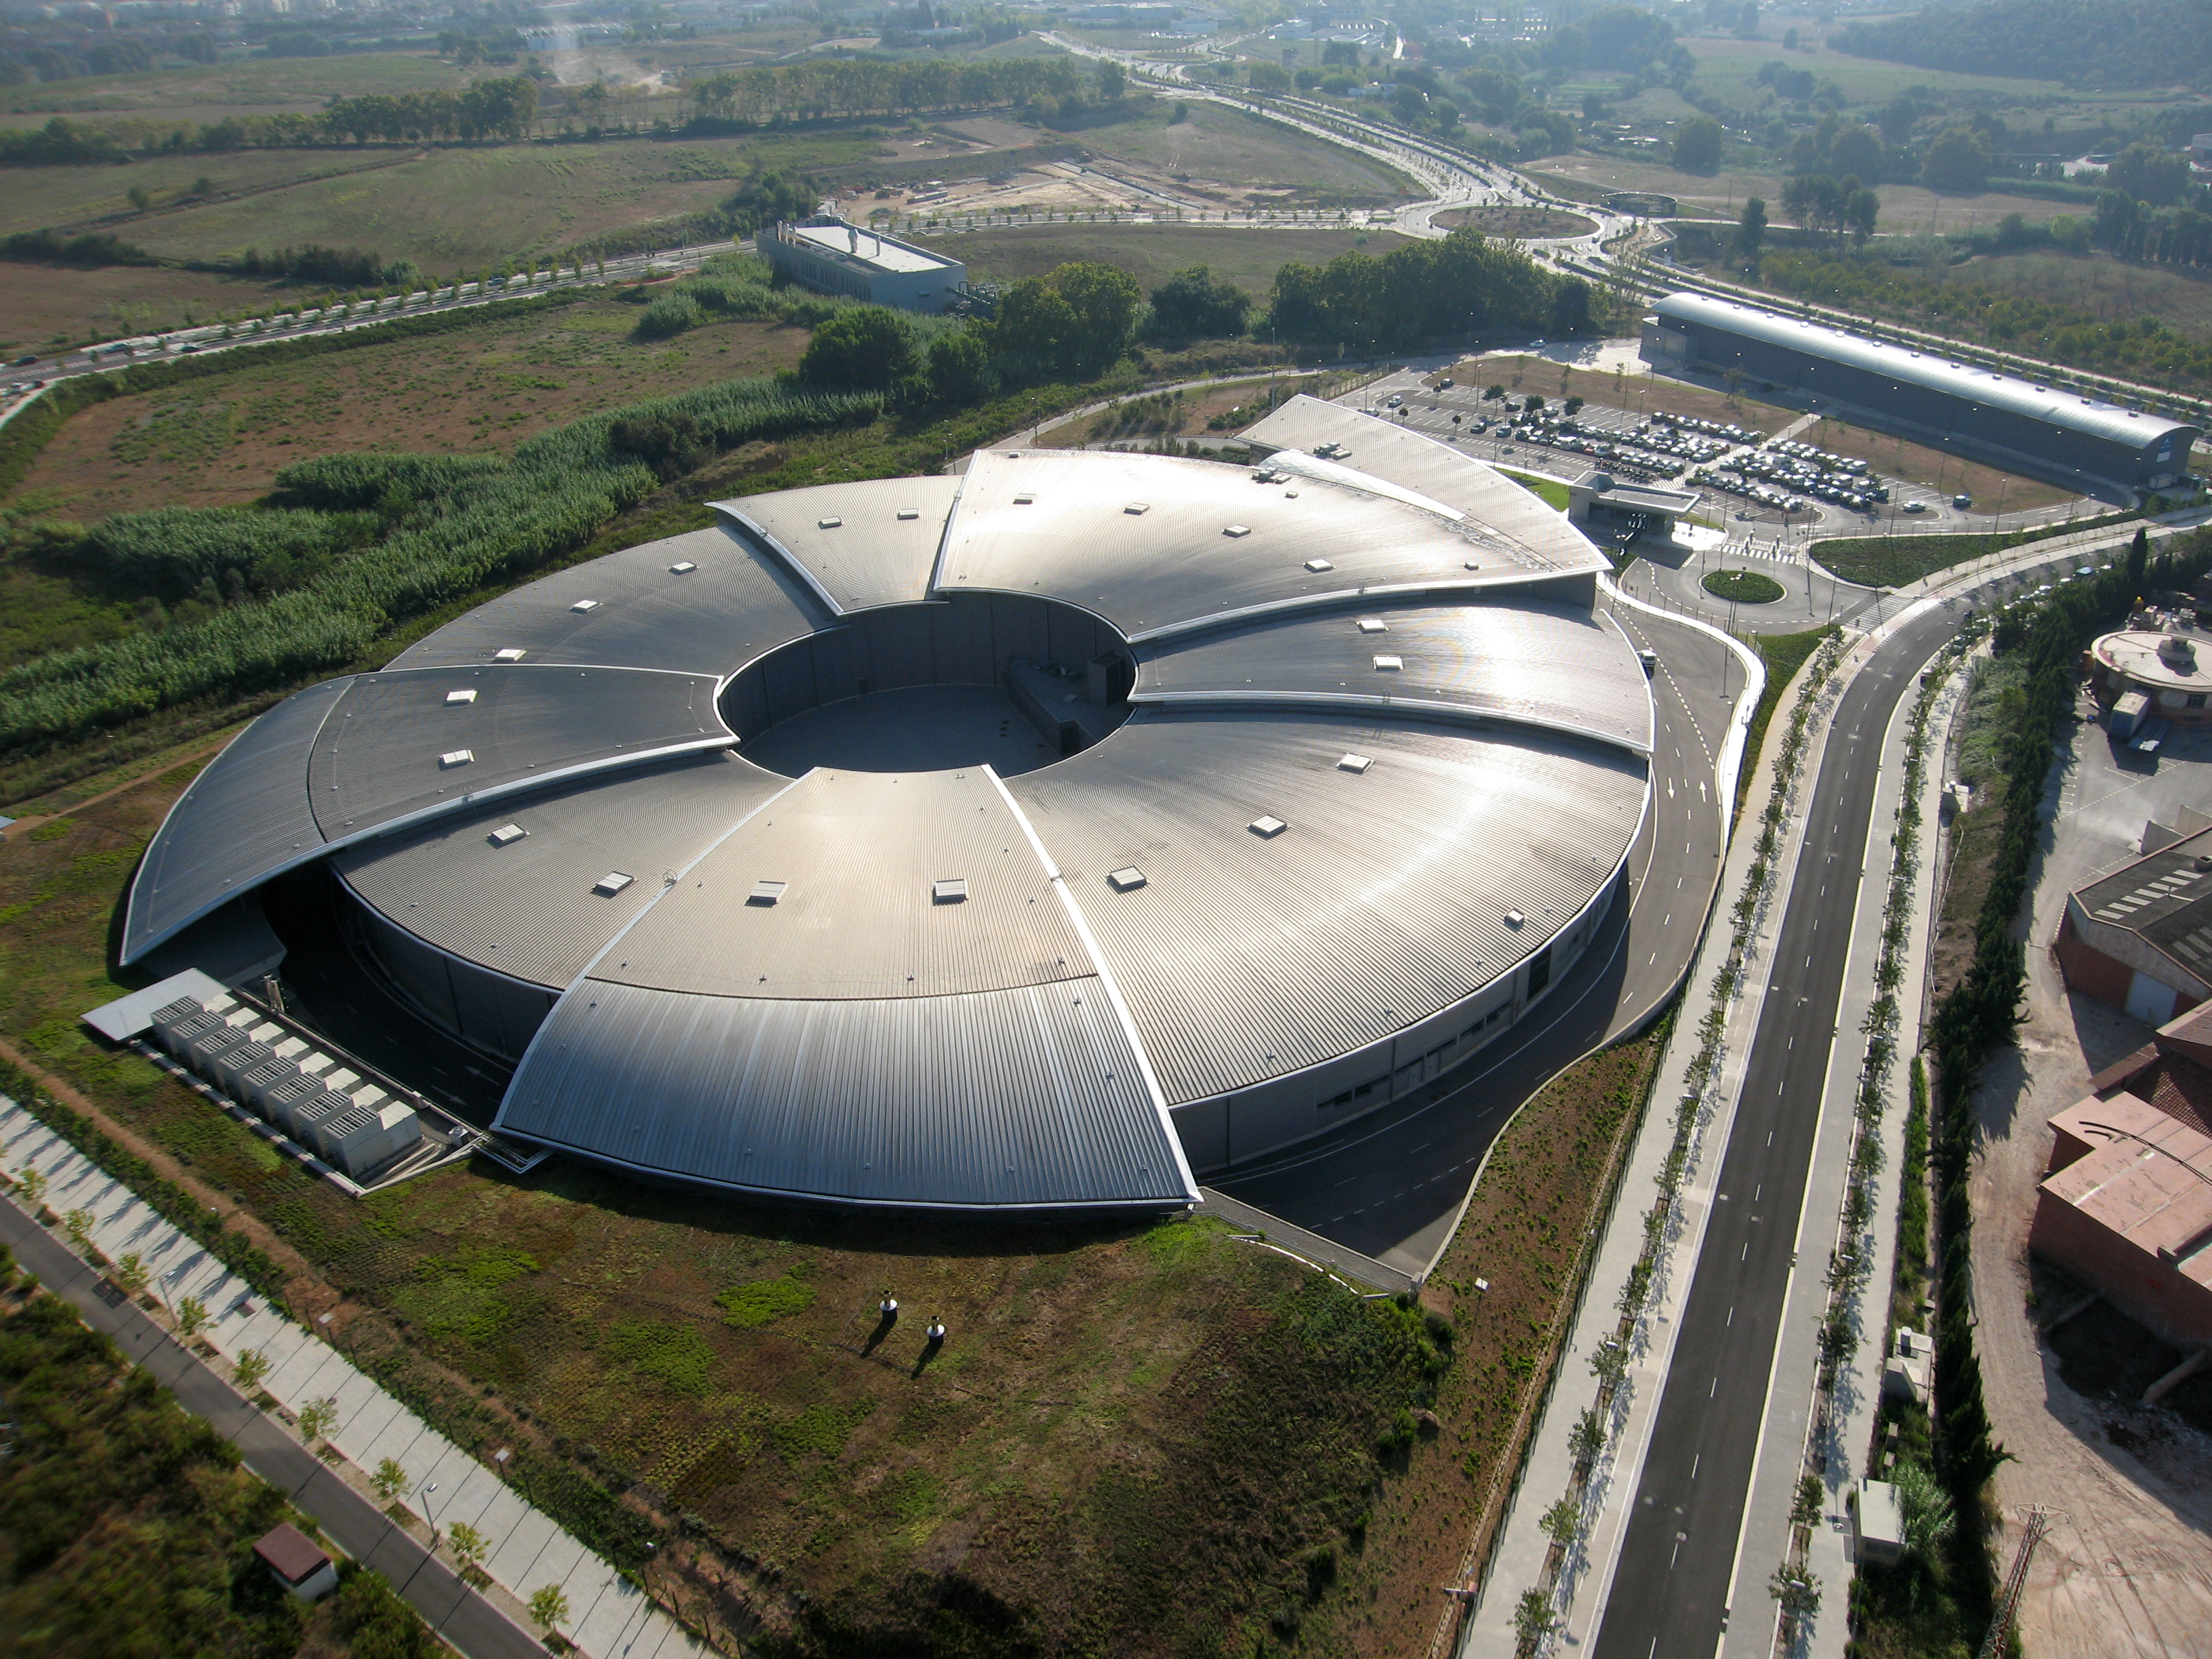 Alba Synchrotron Used For First Time As Microscope To